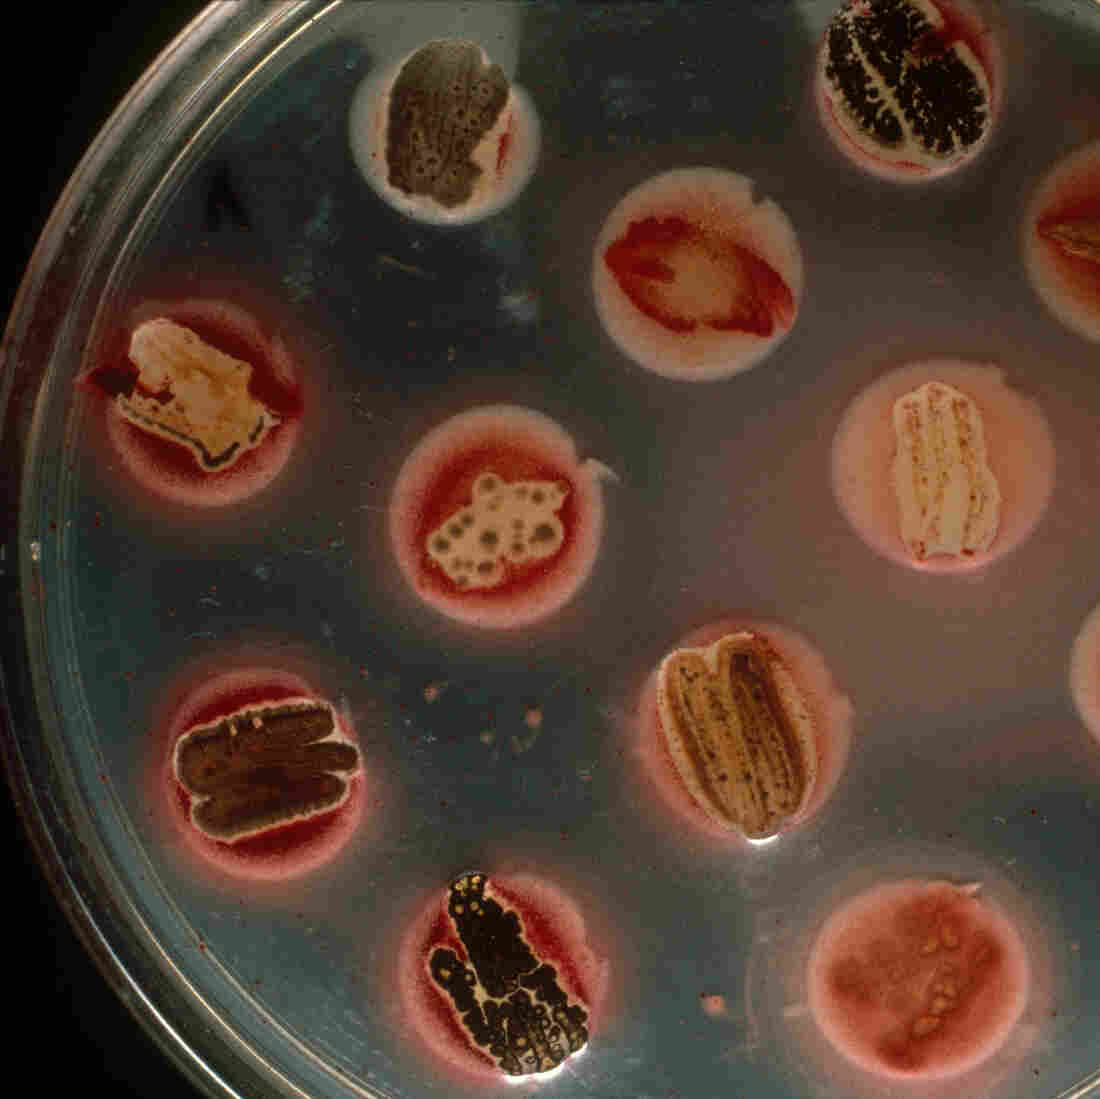 Yes, you could do this at home. Growing bacteria you find in a pile of dirt or a local pond might reveal the next big antibiotic.